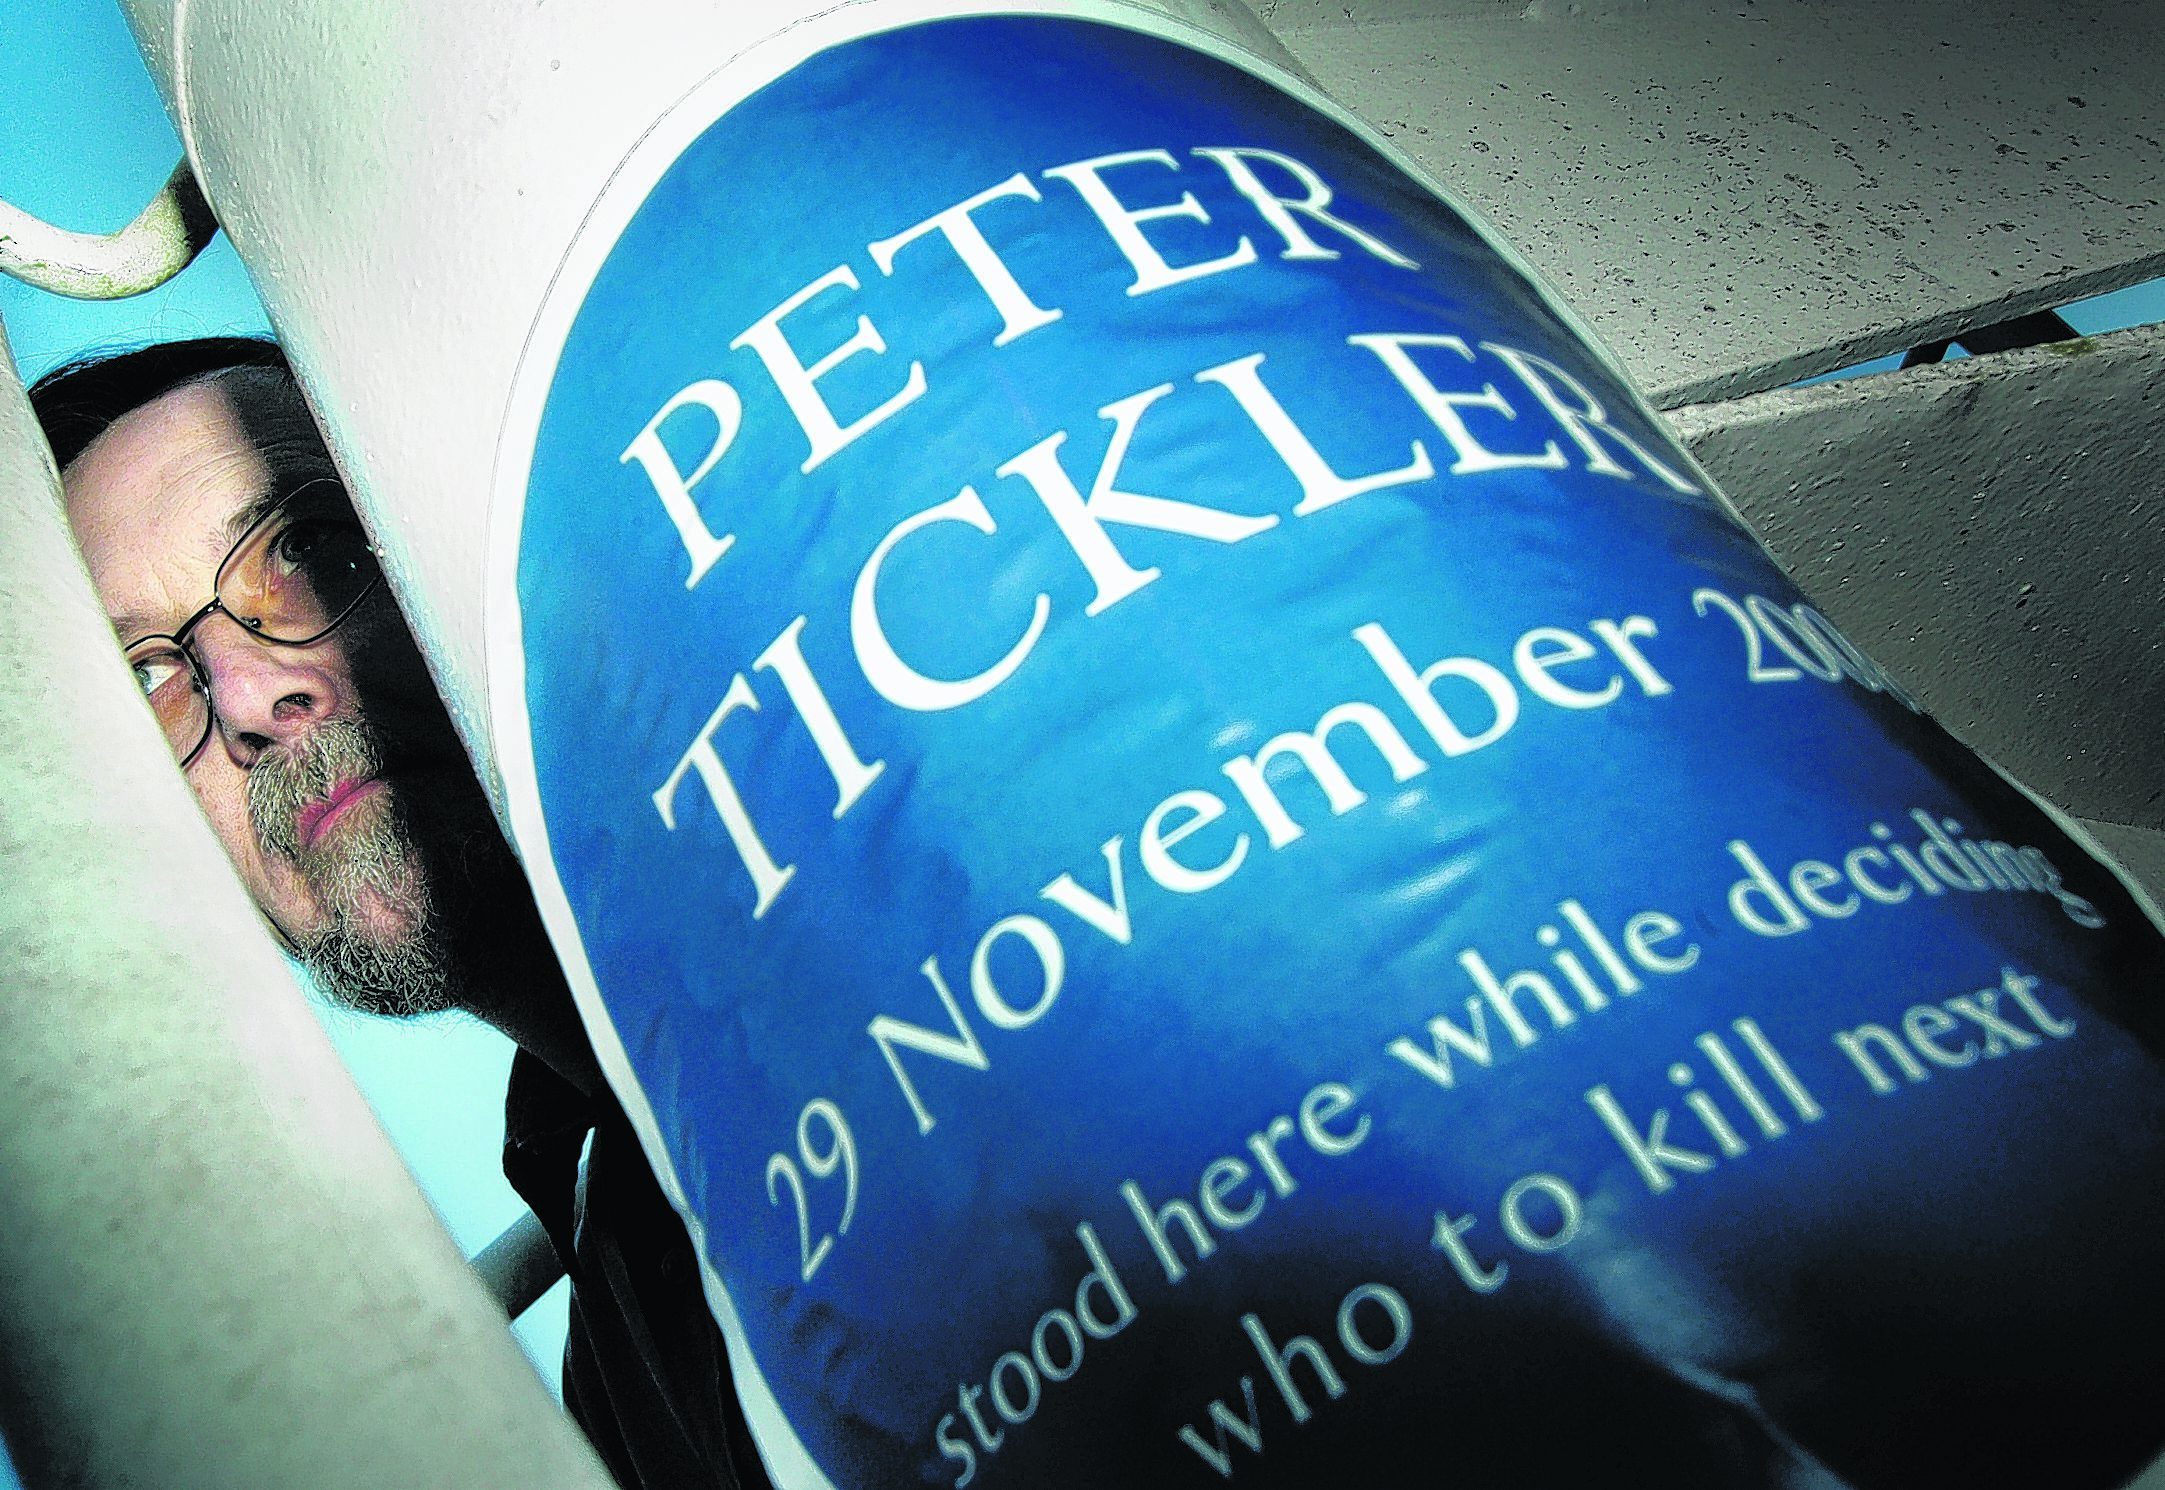 Peter Tickler